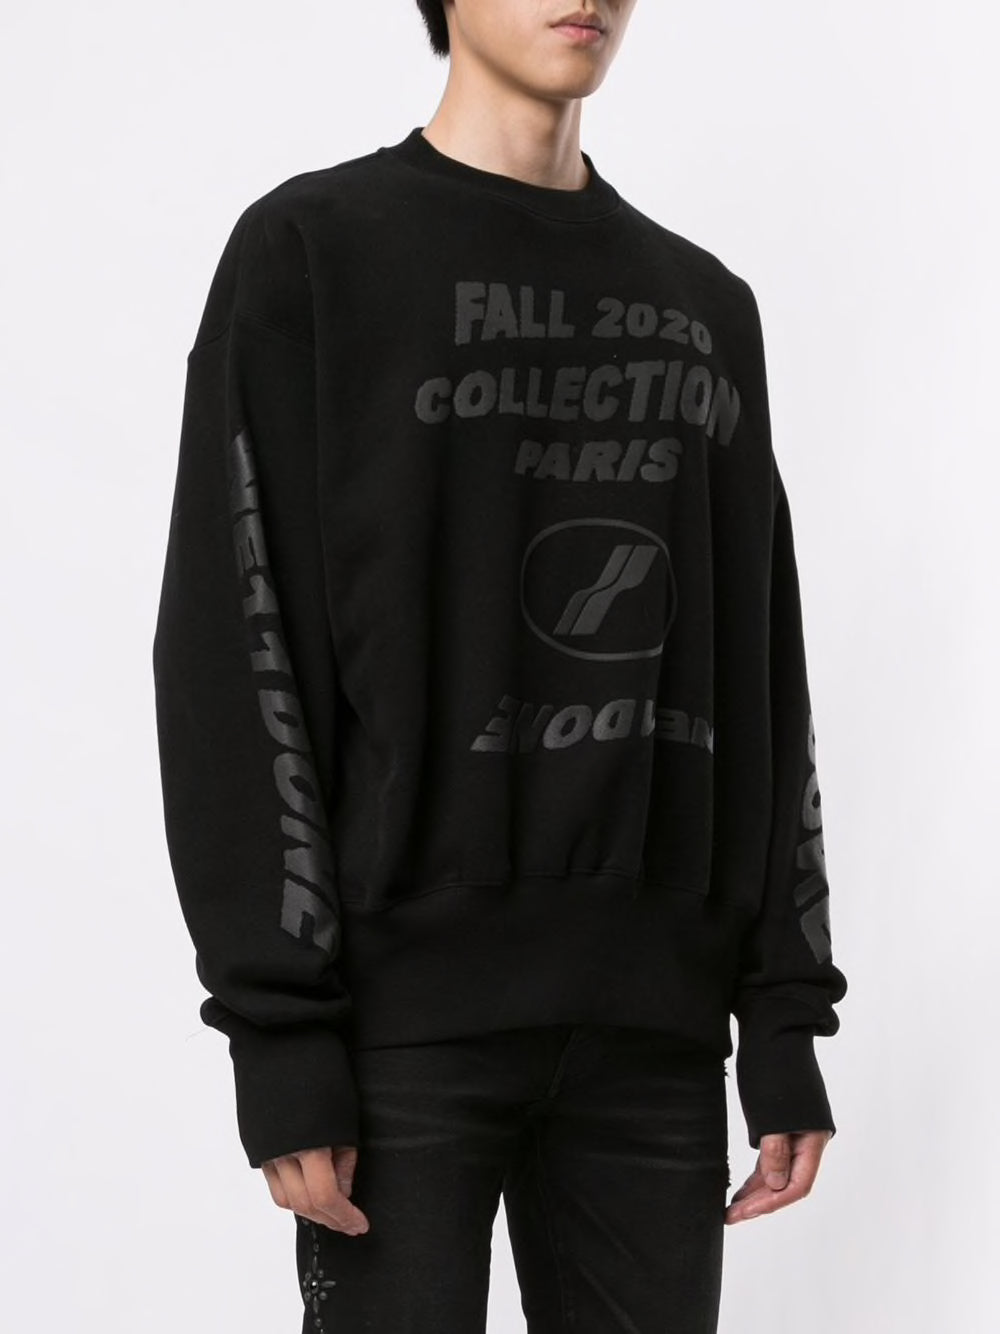 WE11DONE UNISEX FW20 COLLECTION SWEATSHIRT